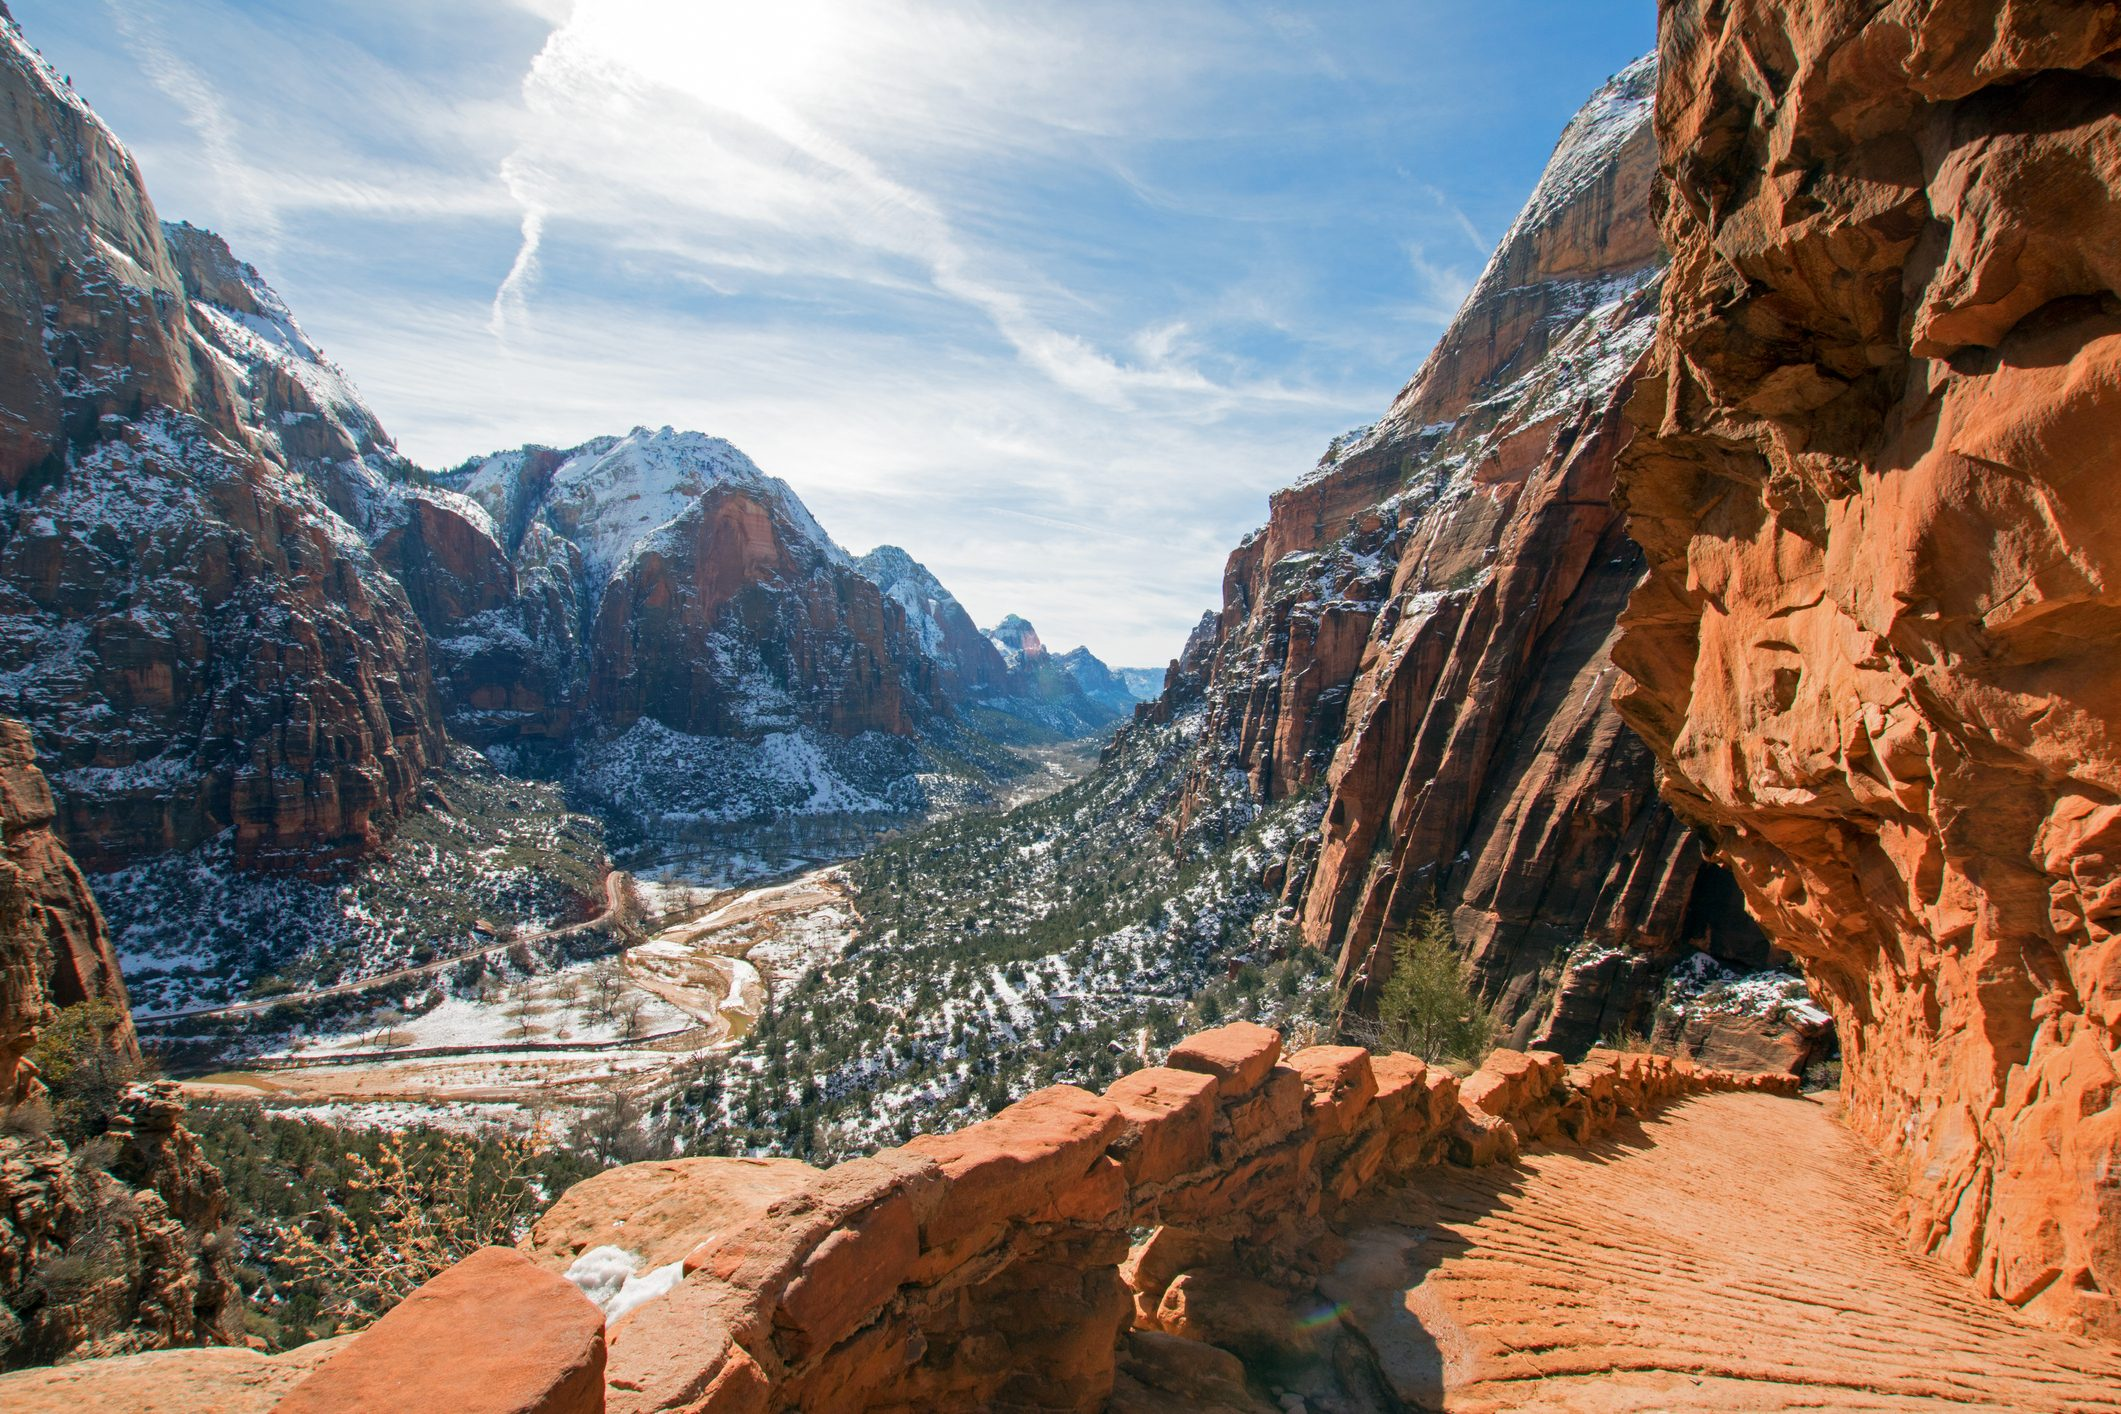 Angels Landing Hiking Trail in the winter high above the Virgin River in Zion National Park in Utah USA